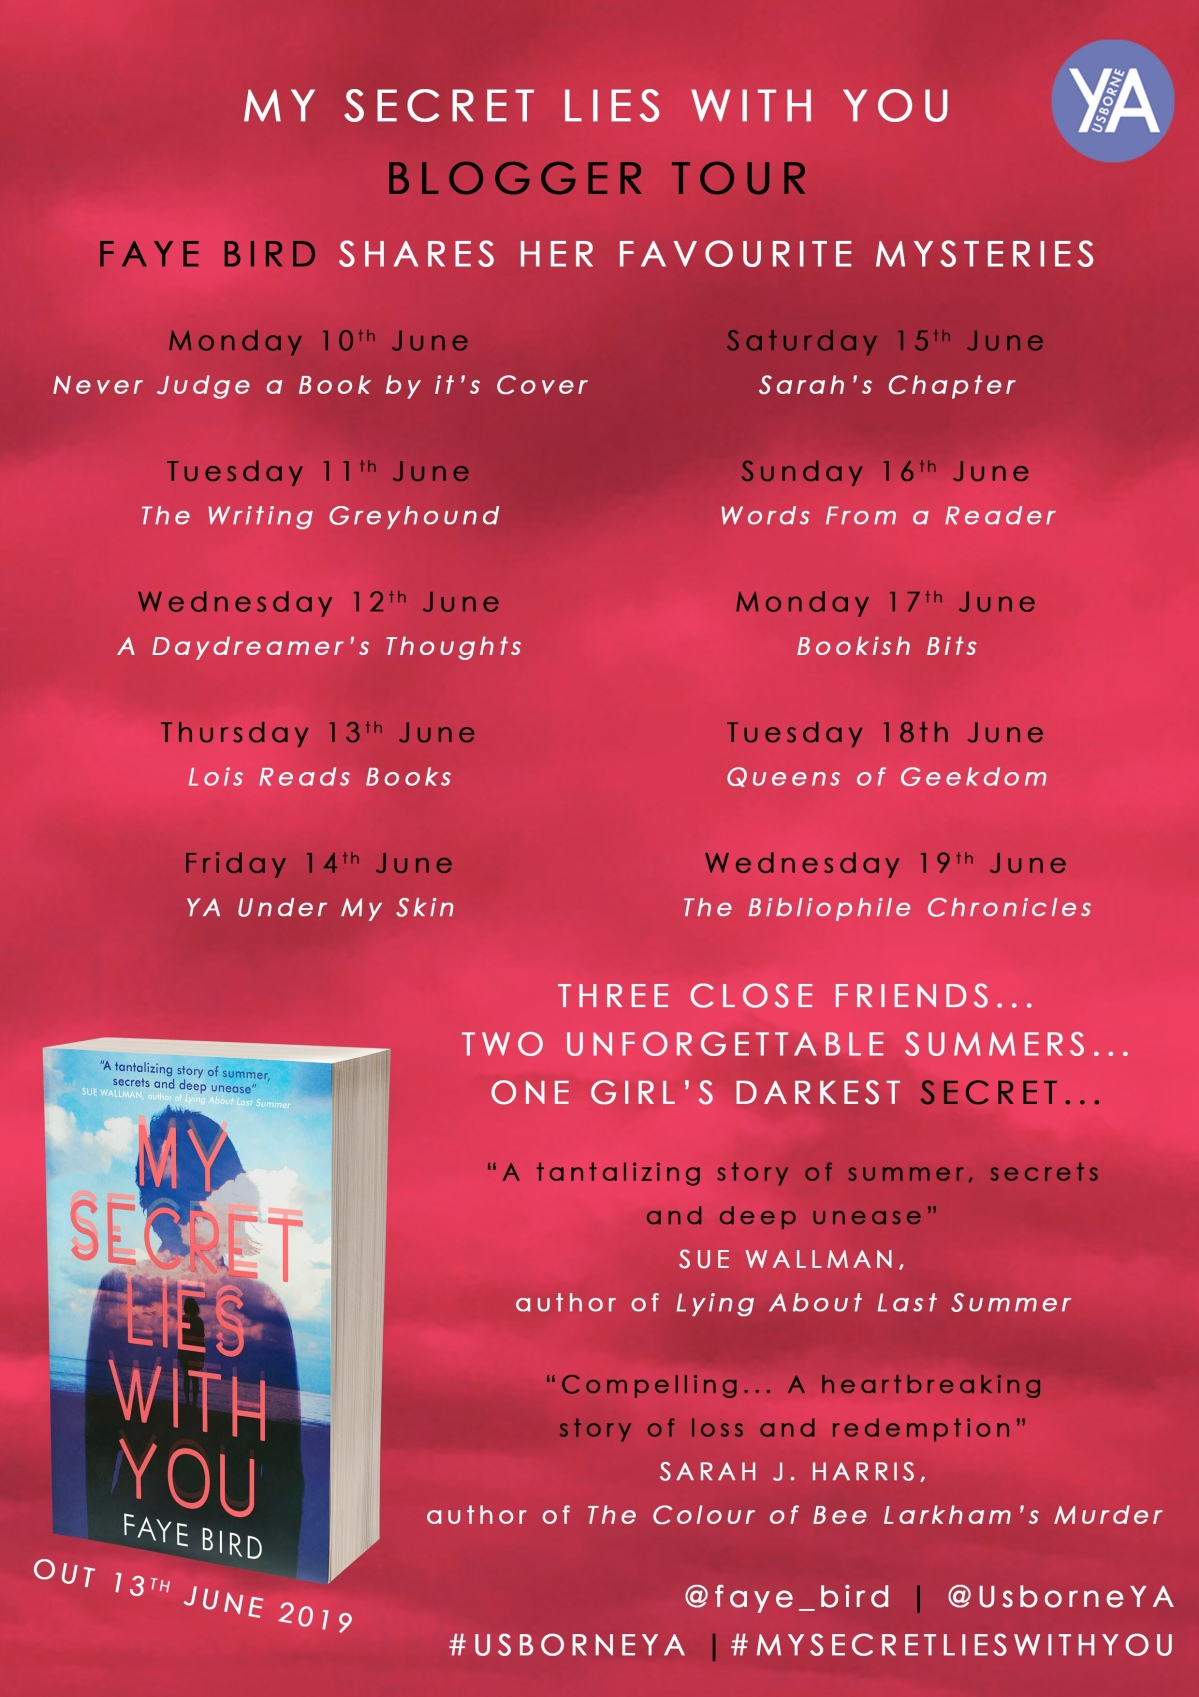 Blog Tour: My Secret Lies With You's Faye Bird shares her favourite mysteries